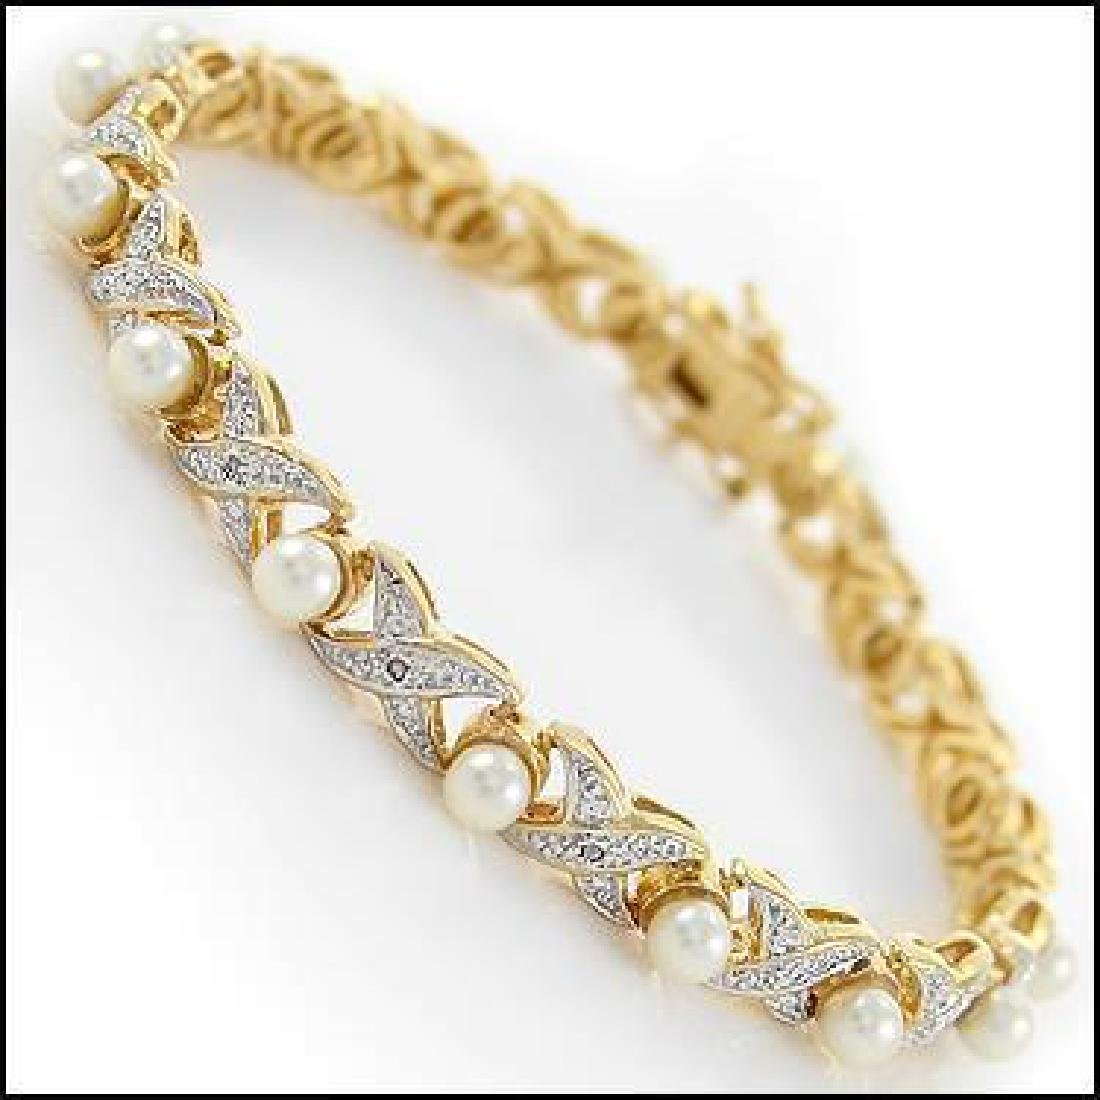 6mm Freshwater Pearl and Diamond Gold Bracelet